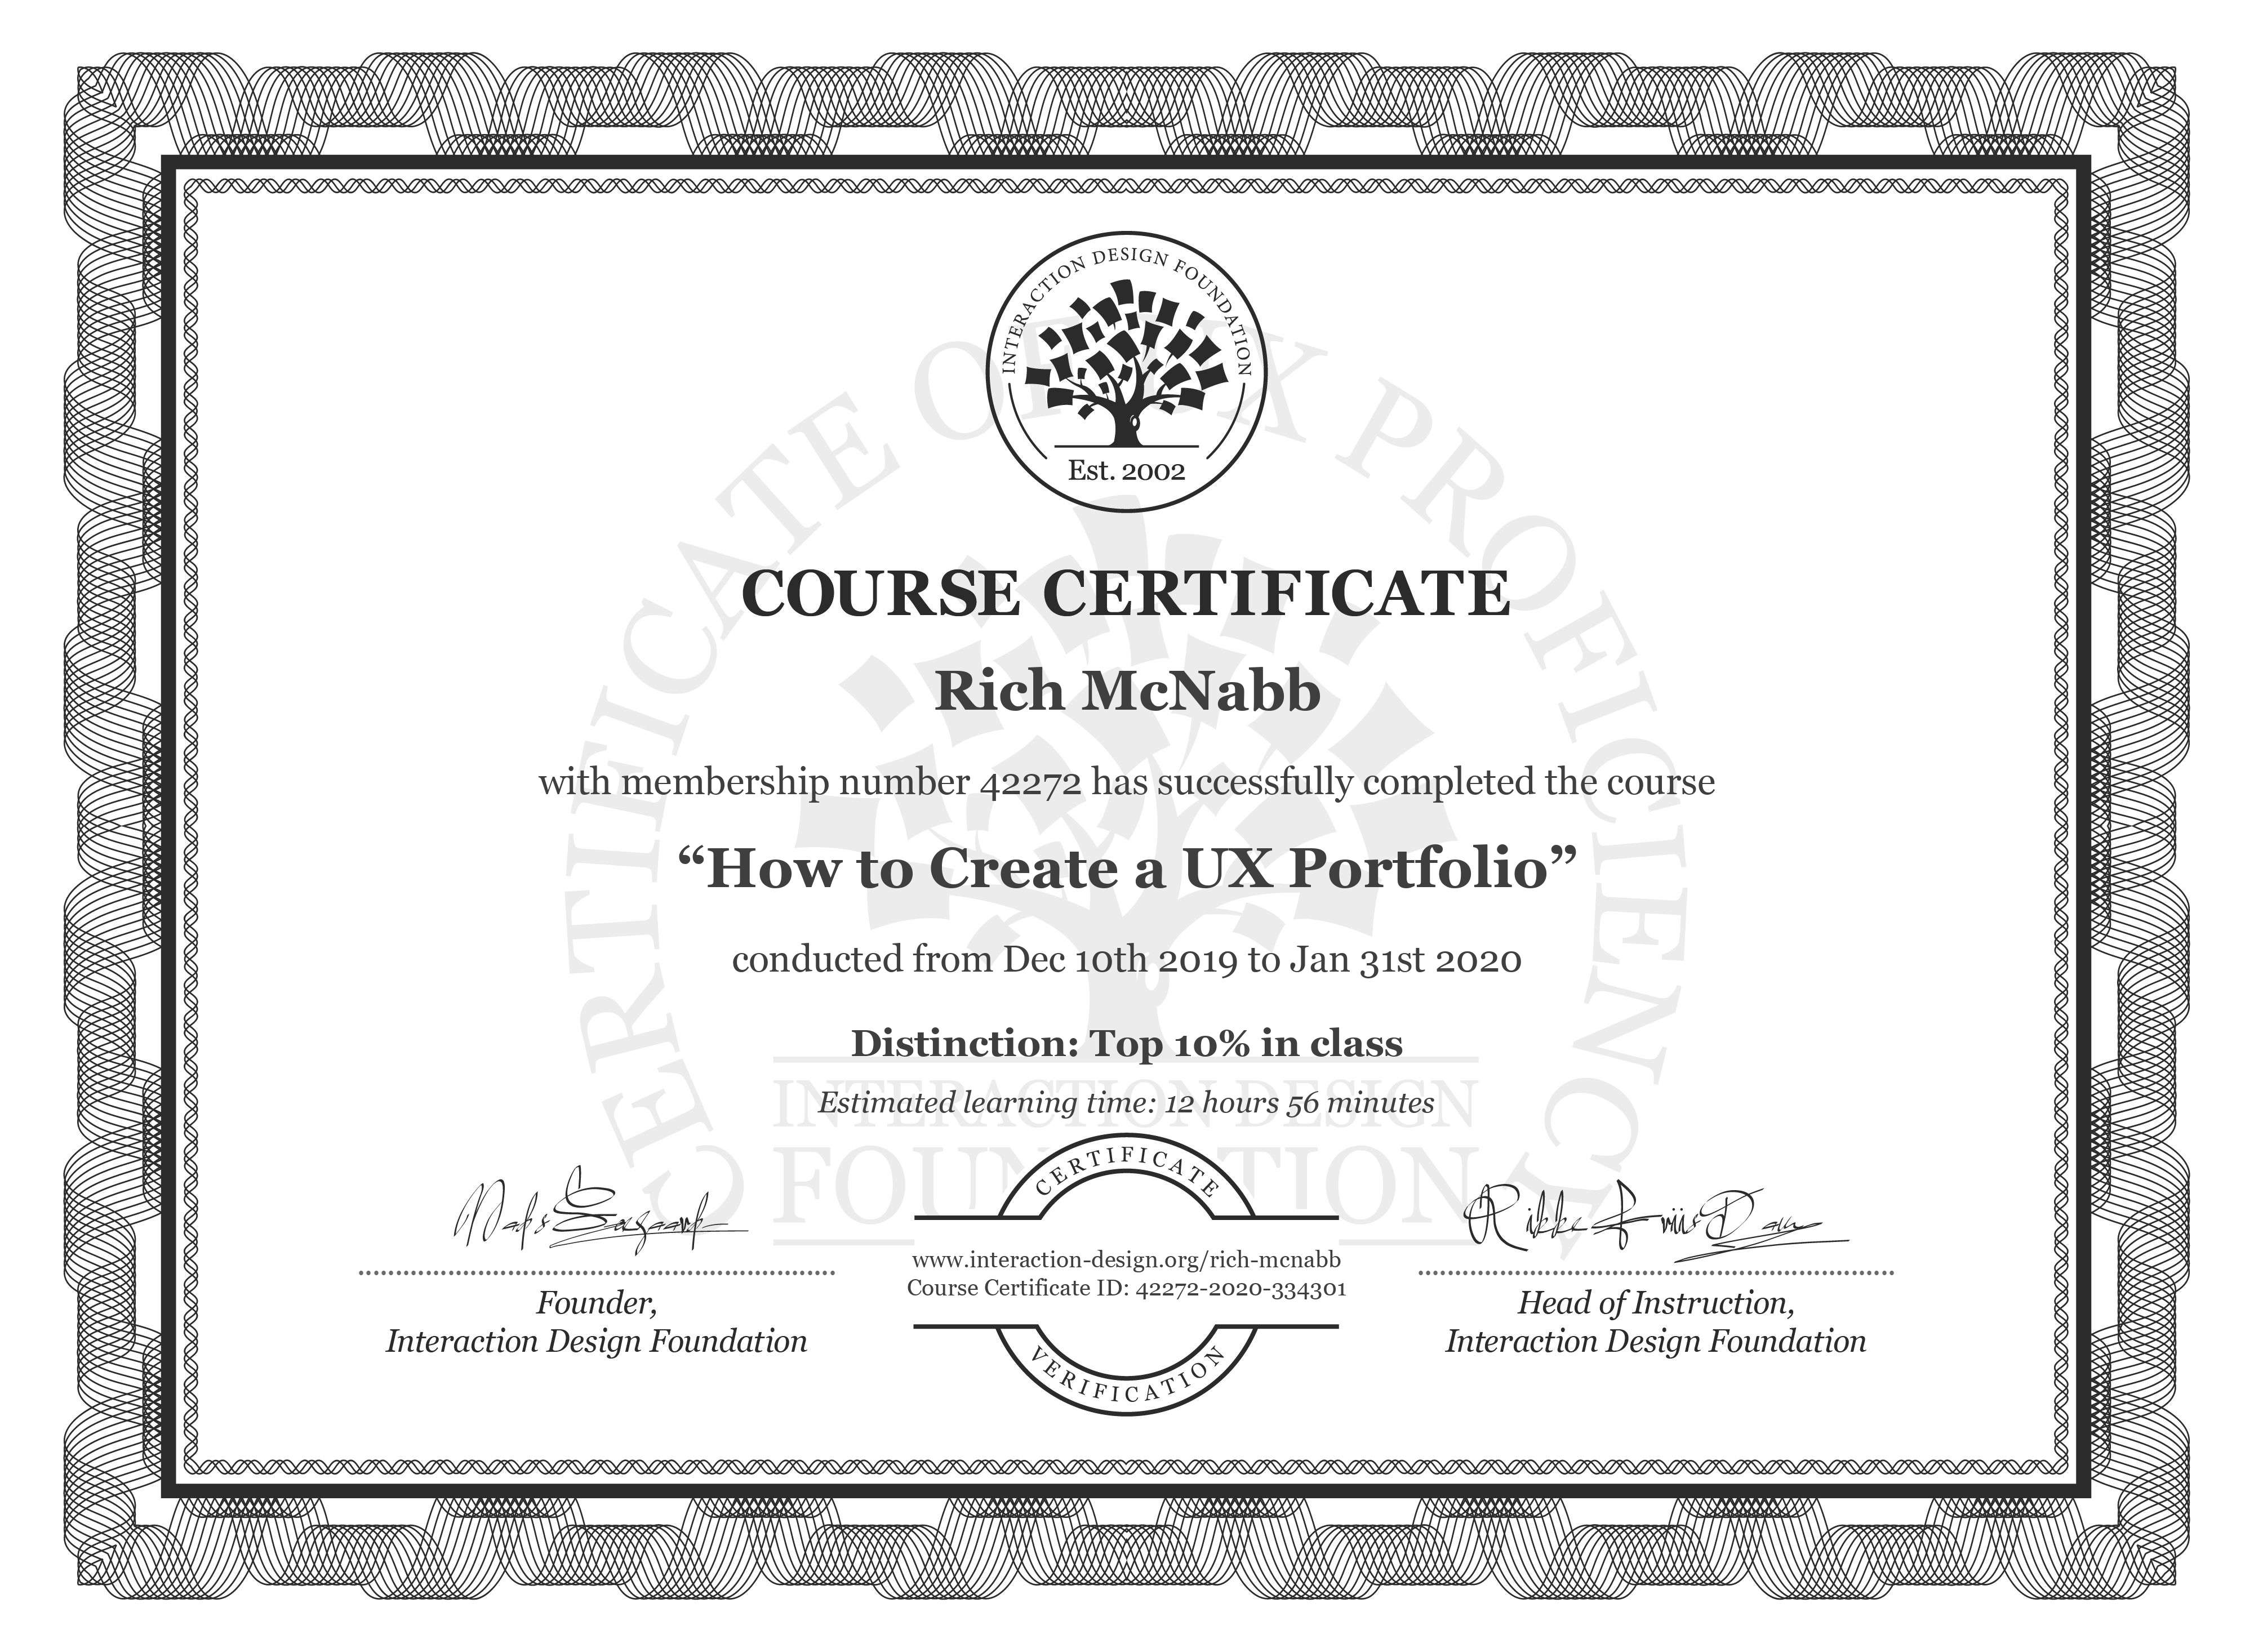 Rich McNabb's Course Certificate: How to Create a UX Portfolio